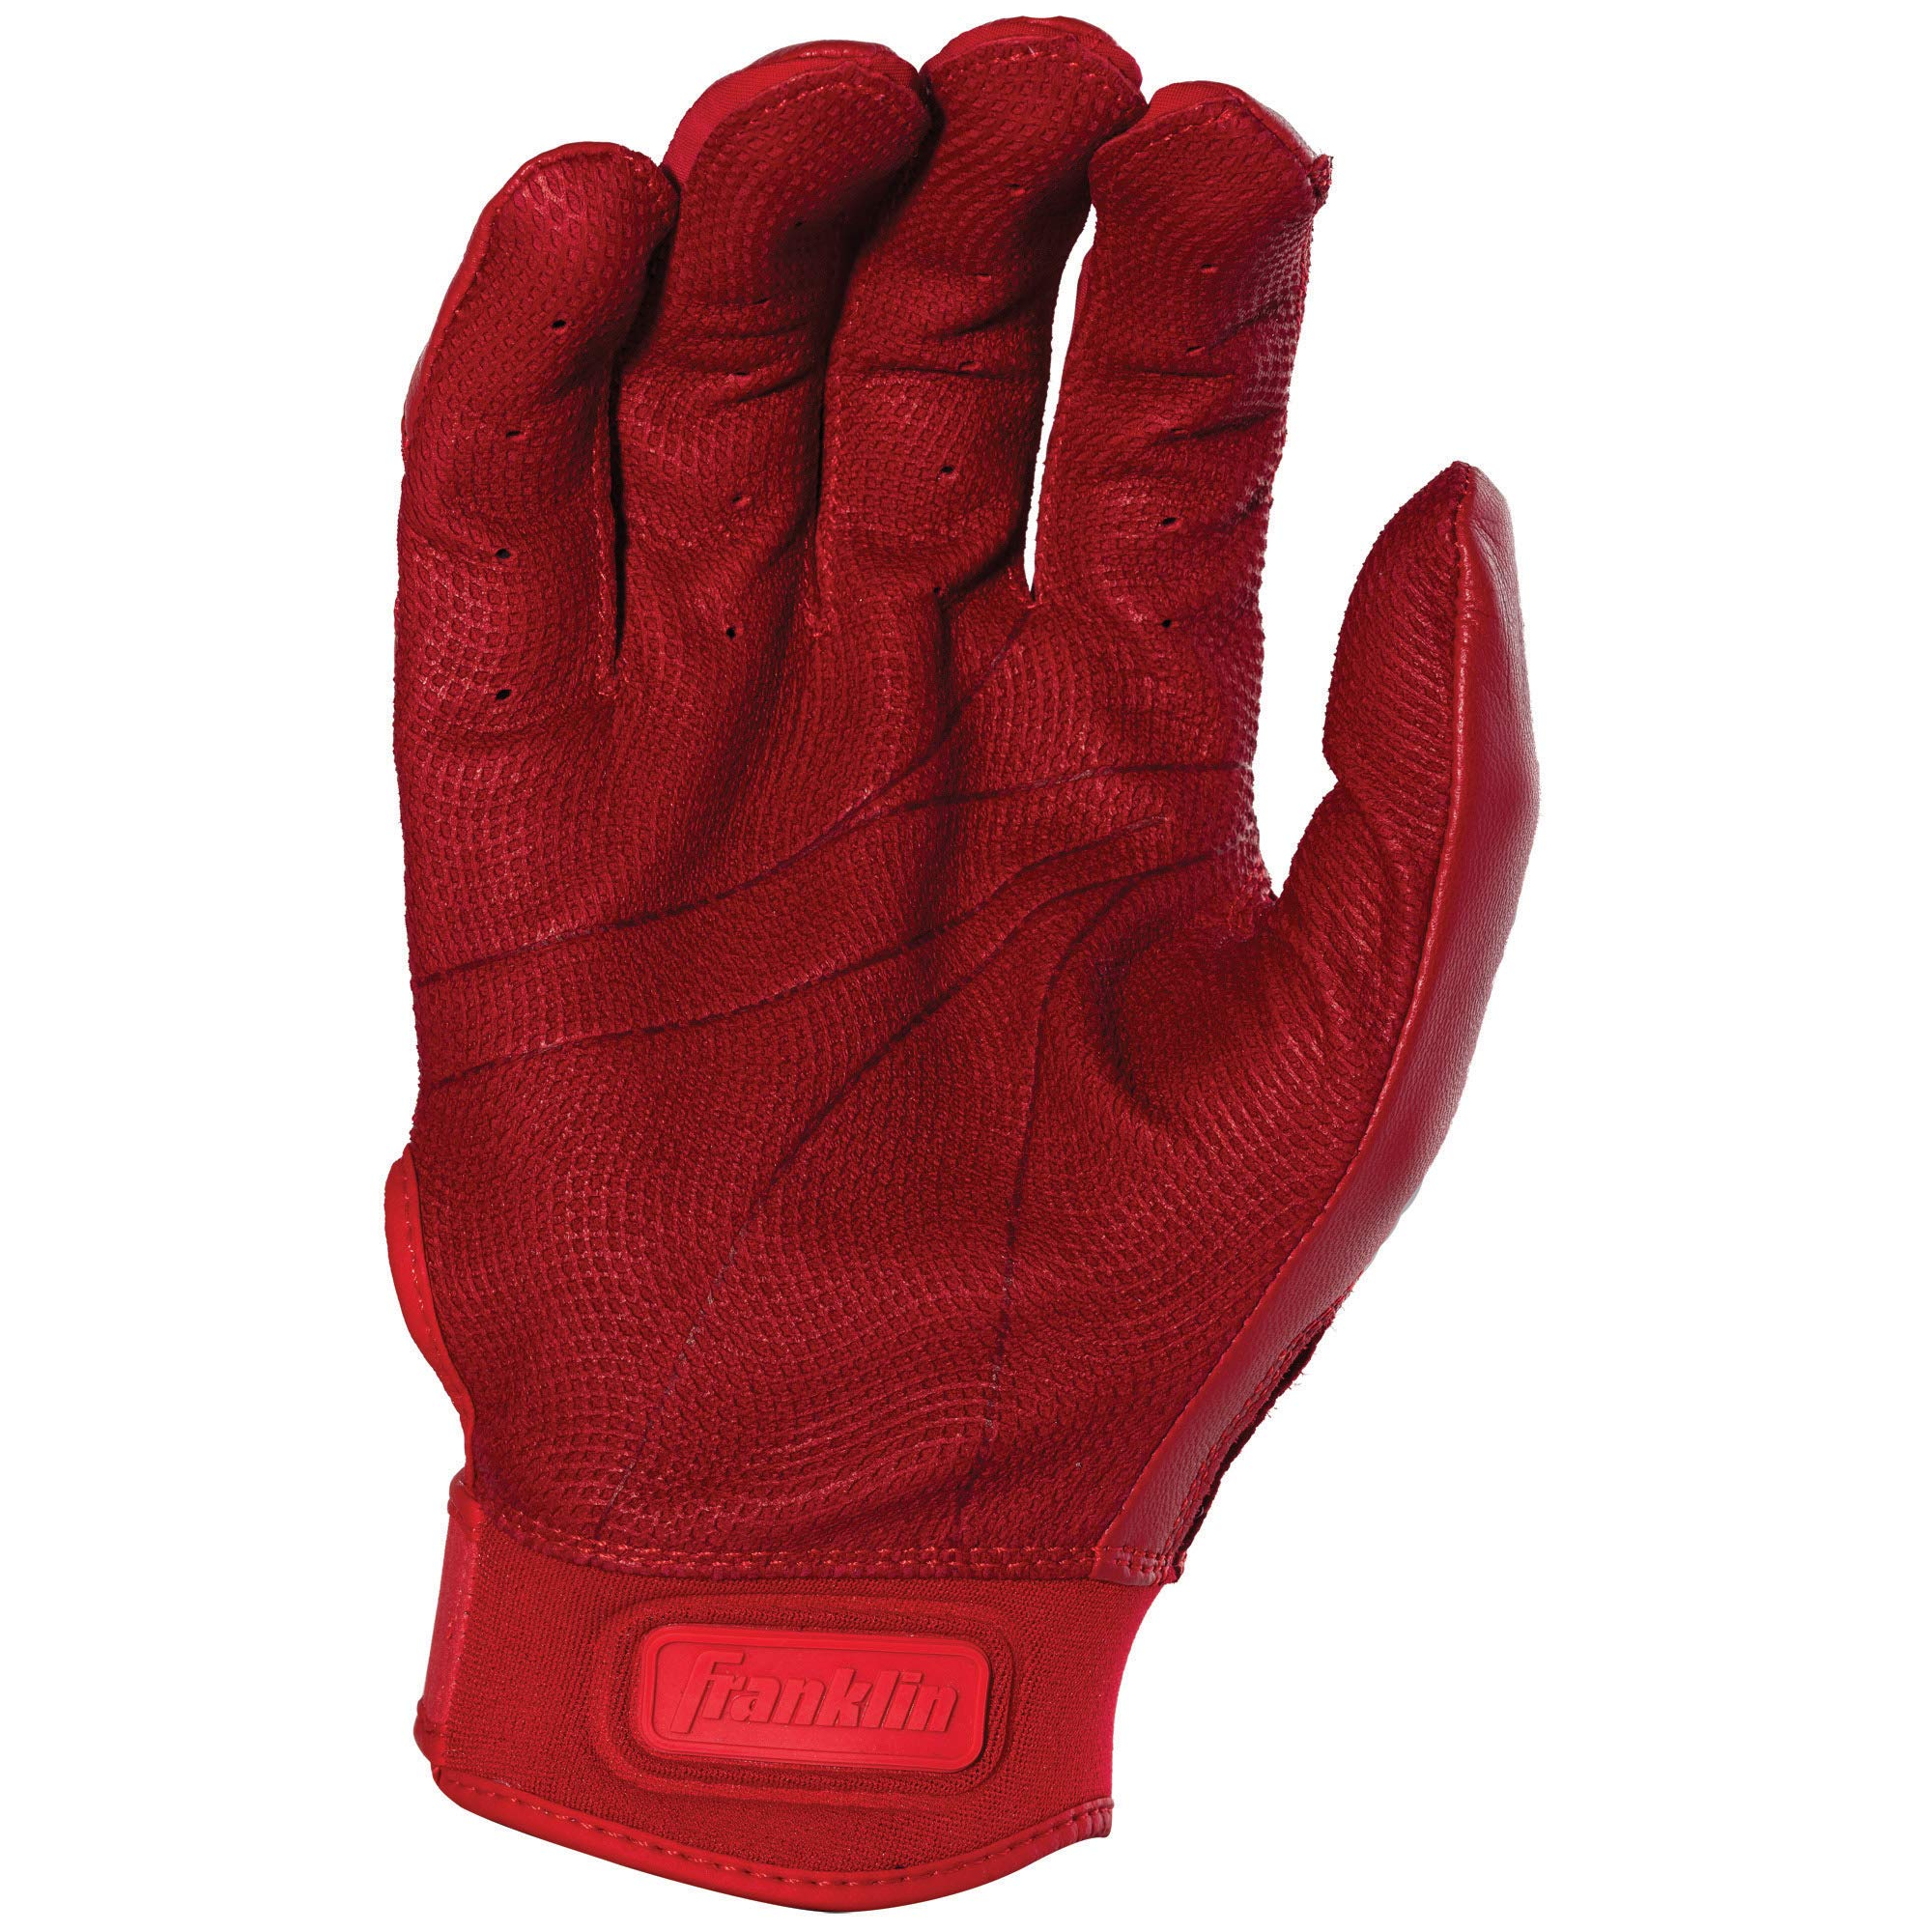 Franklin Sports CFX Pro Full Color Chrome Series Batting Gloves CFX Pro Full Color Chrome Batting Gloves, Red, Adult Small by Franklin Sports (Image #3)